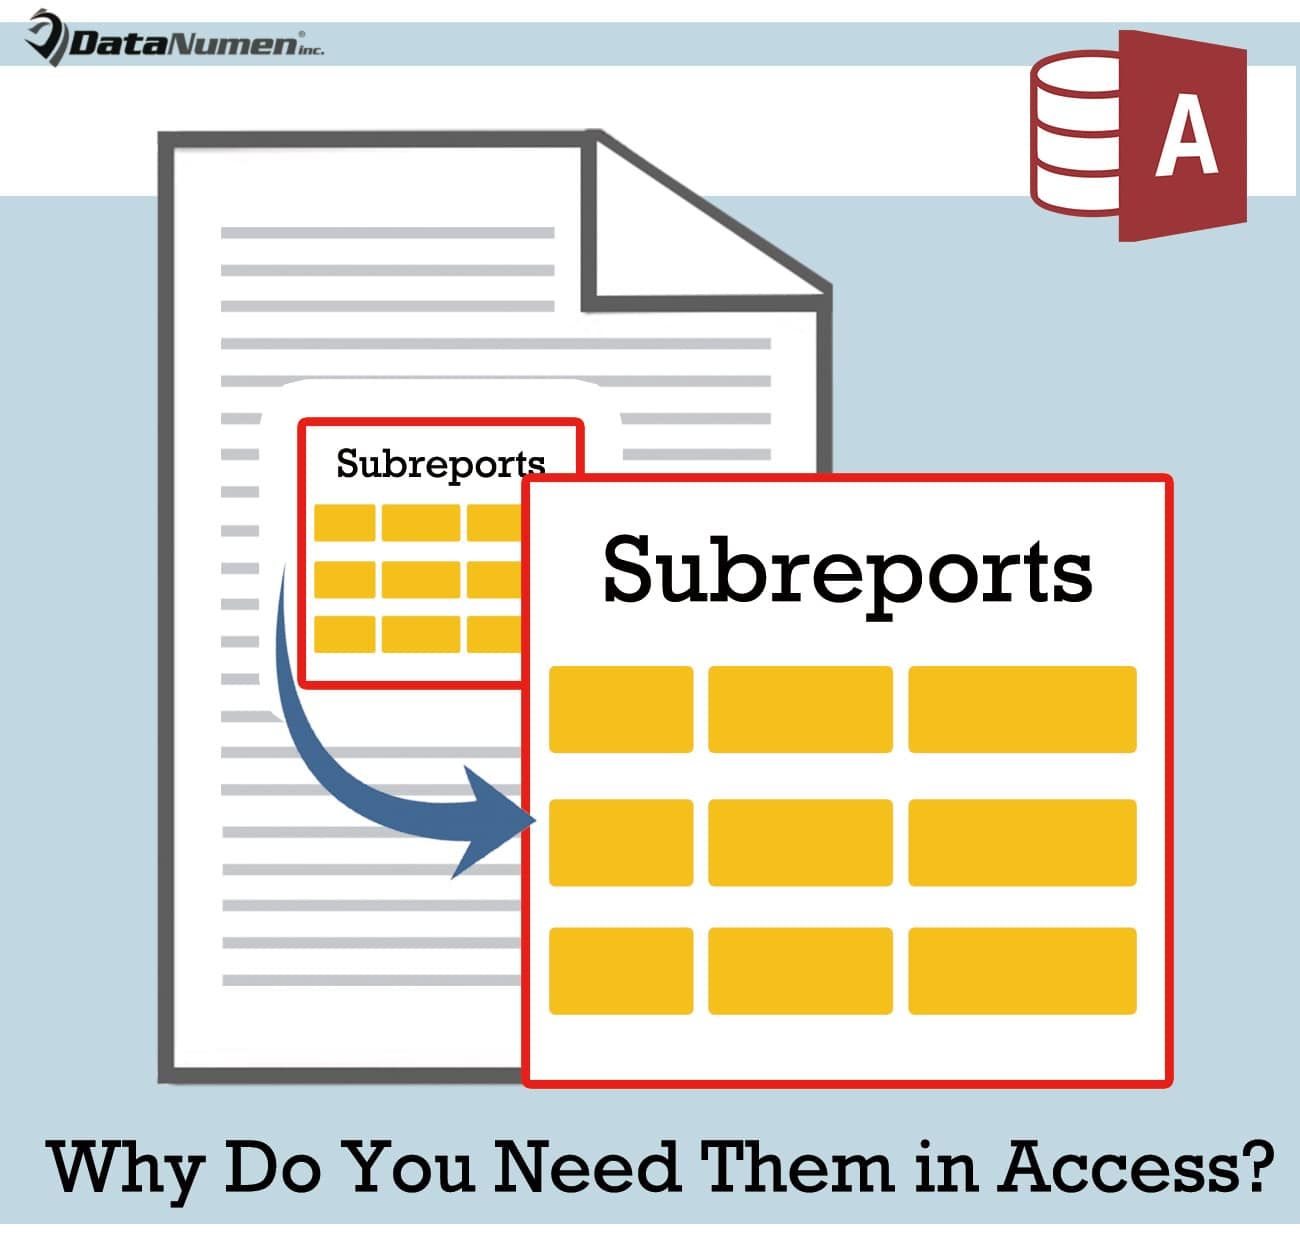 Subreports - Why Do You Need Them In Access